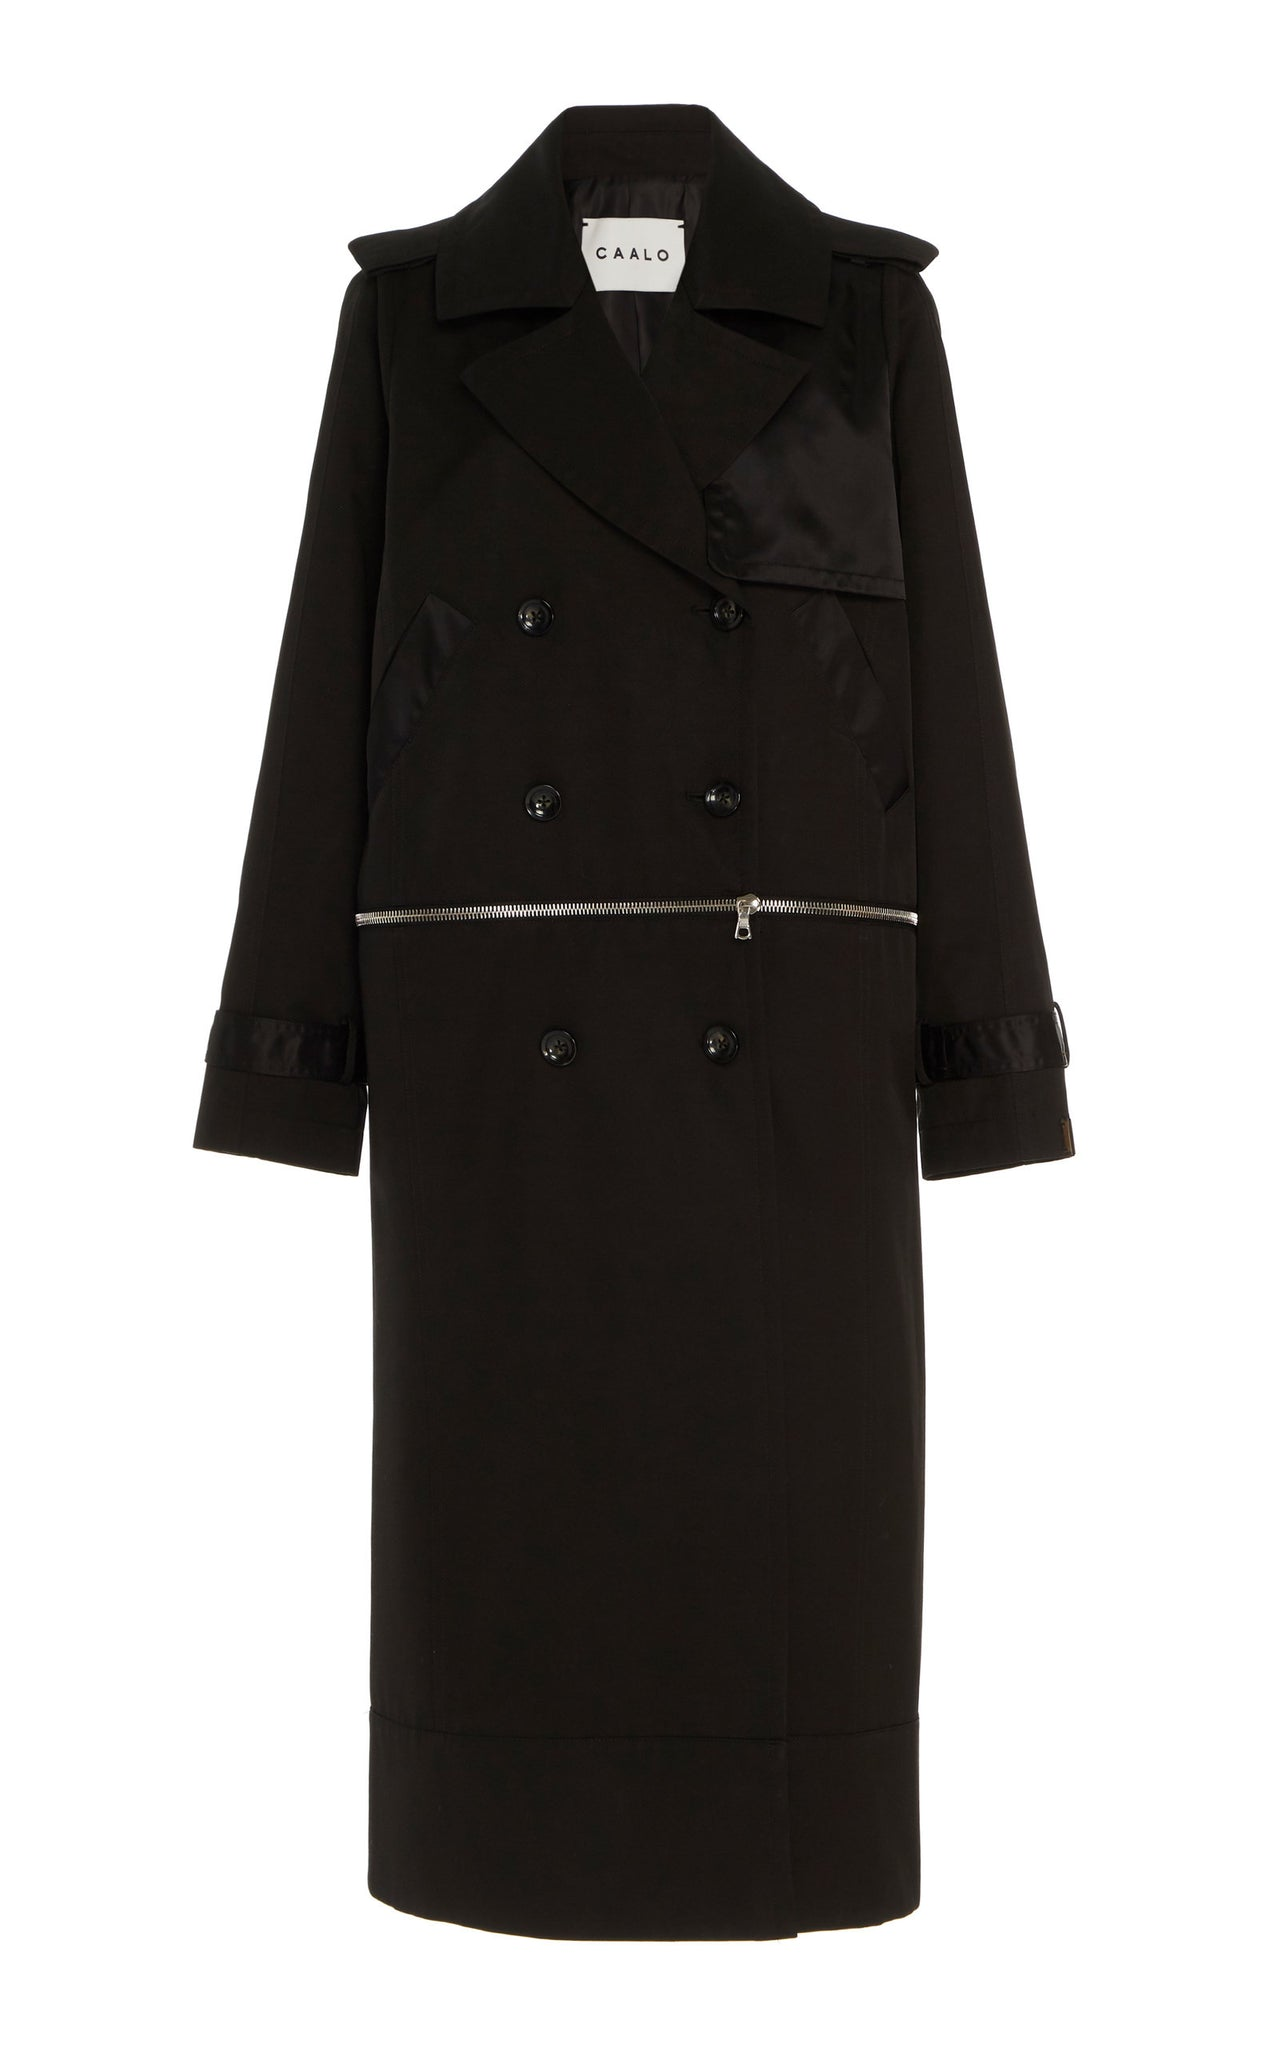 BLACK CONVERTIBLE HOODED TRENCH